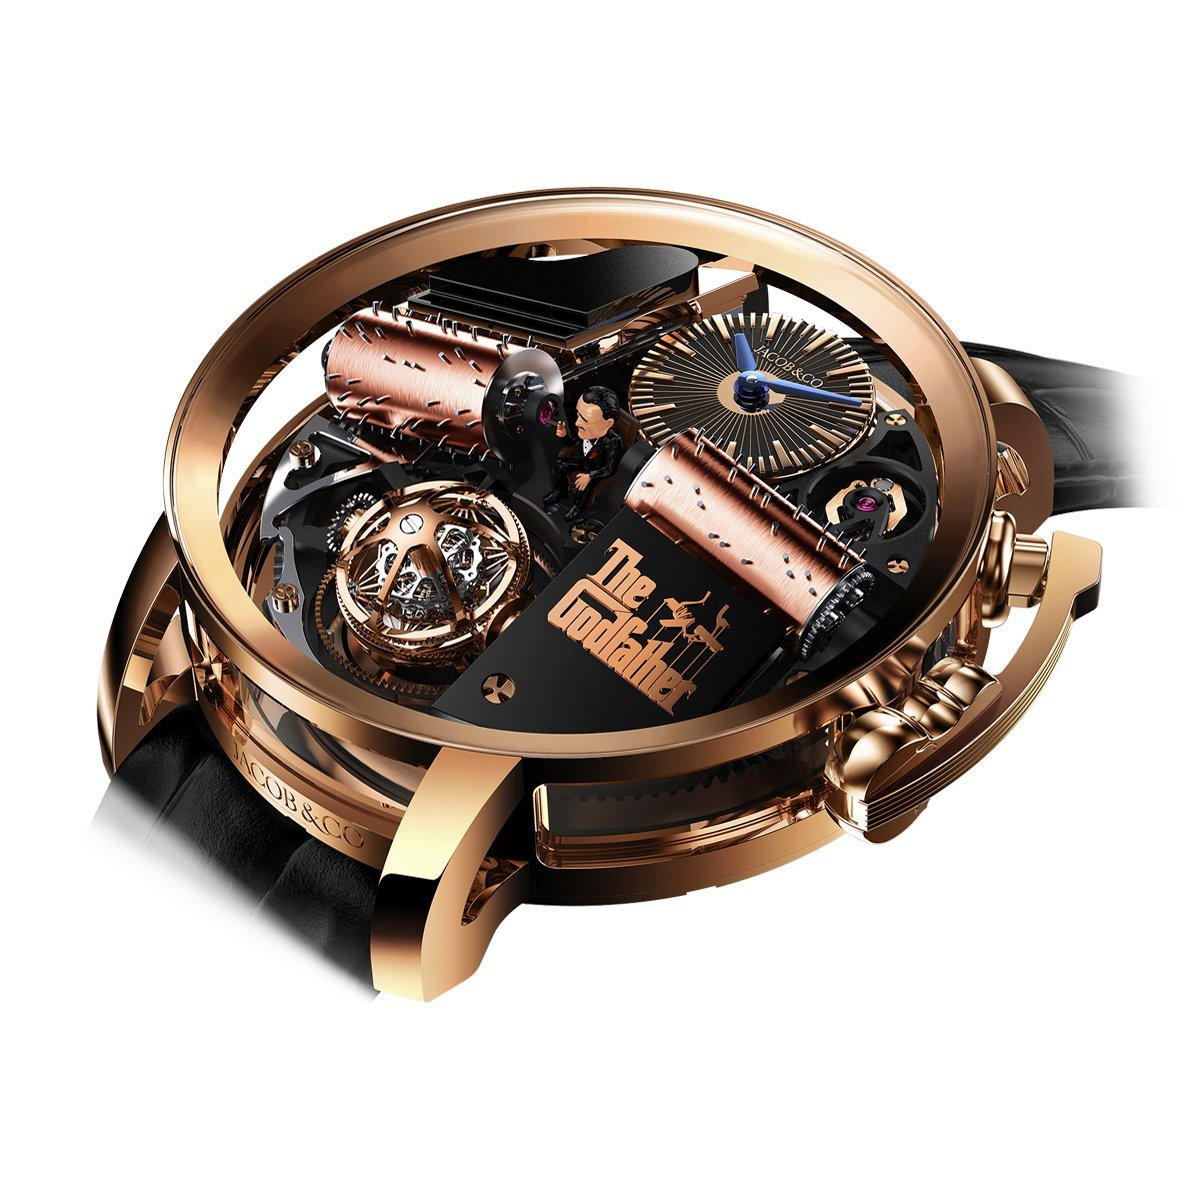 Jacob & Co. Opera Godfather Musical Watch Rose Gold - Watches & Crystals